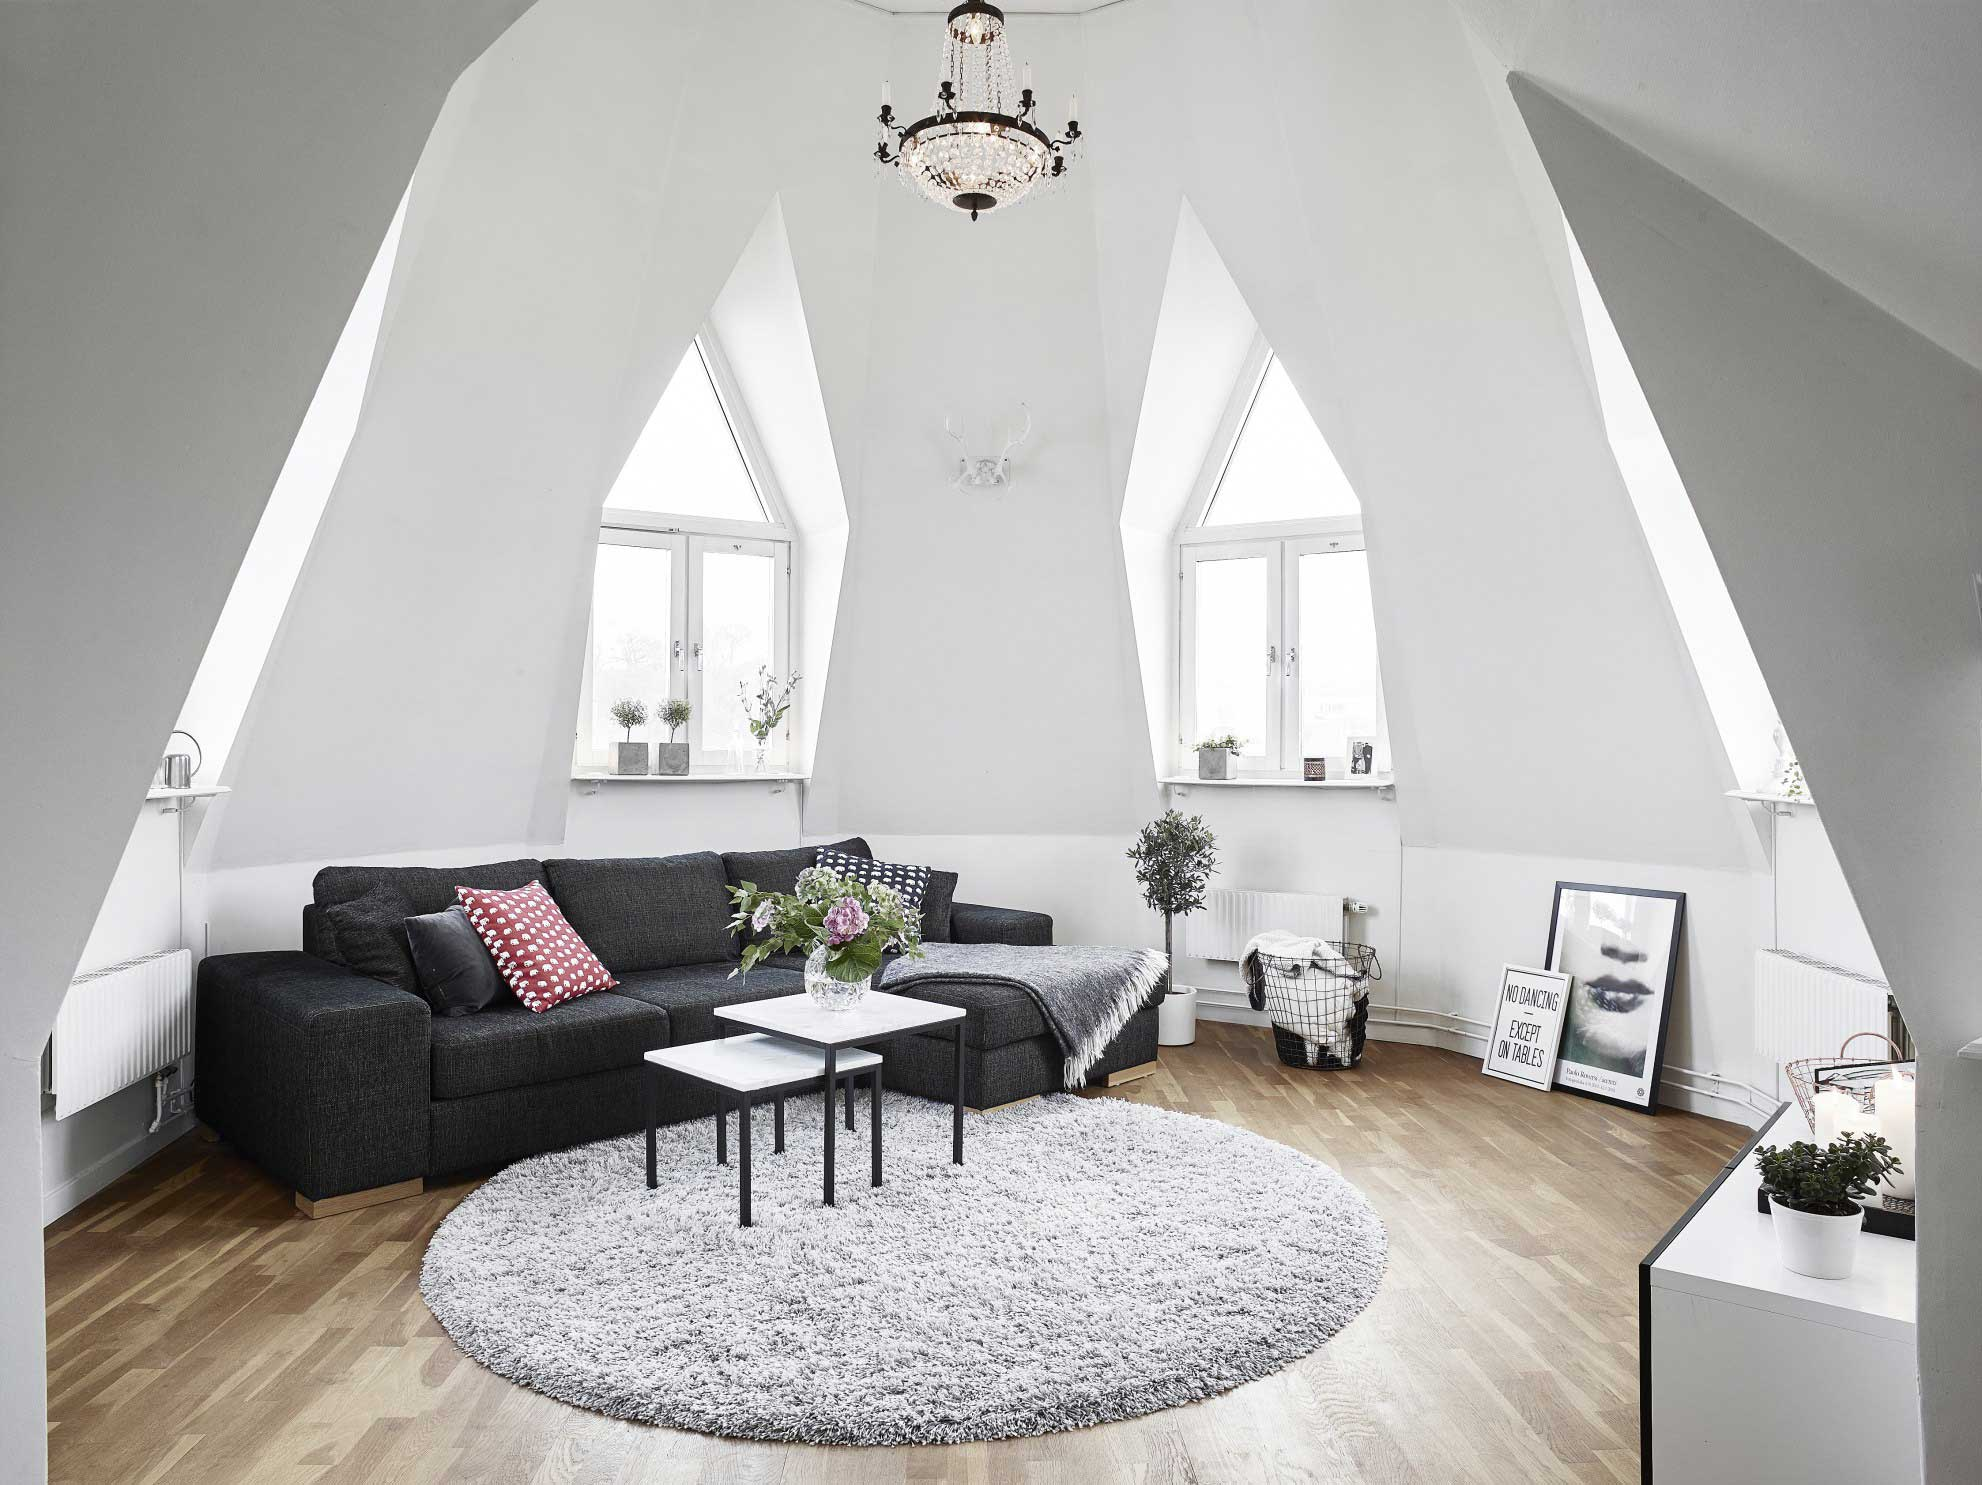 living room bed ideas orange pics 39 attic rooms that really are the best adorable home com oddly shaped